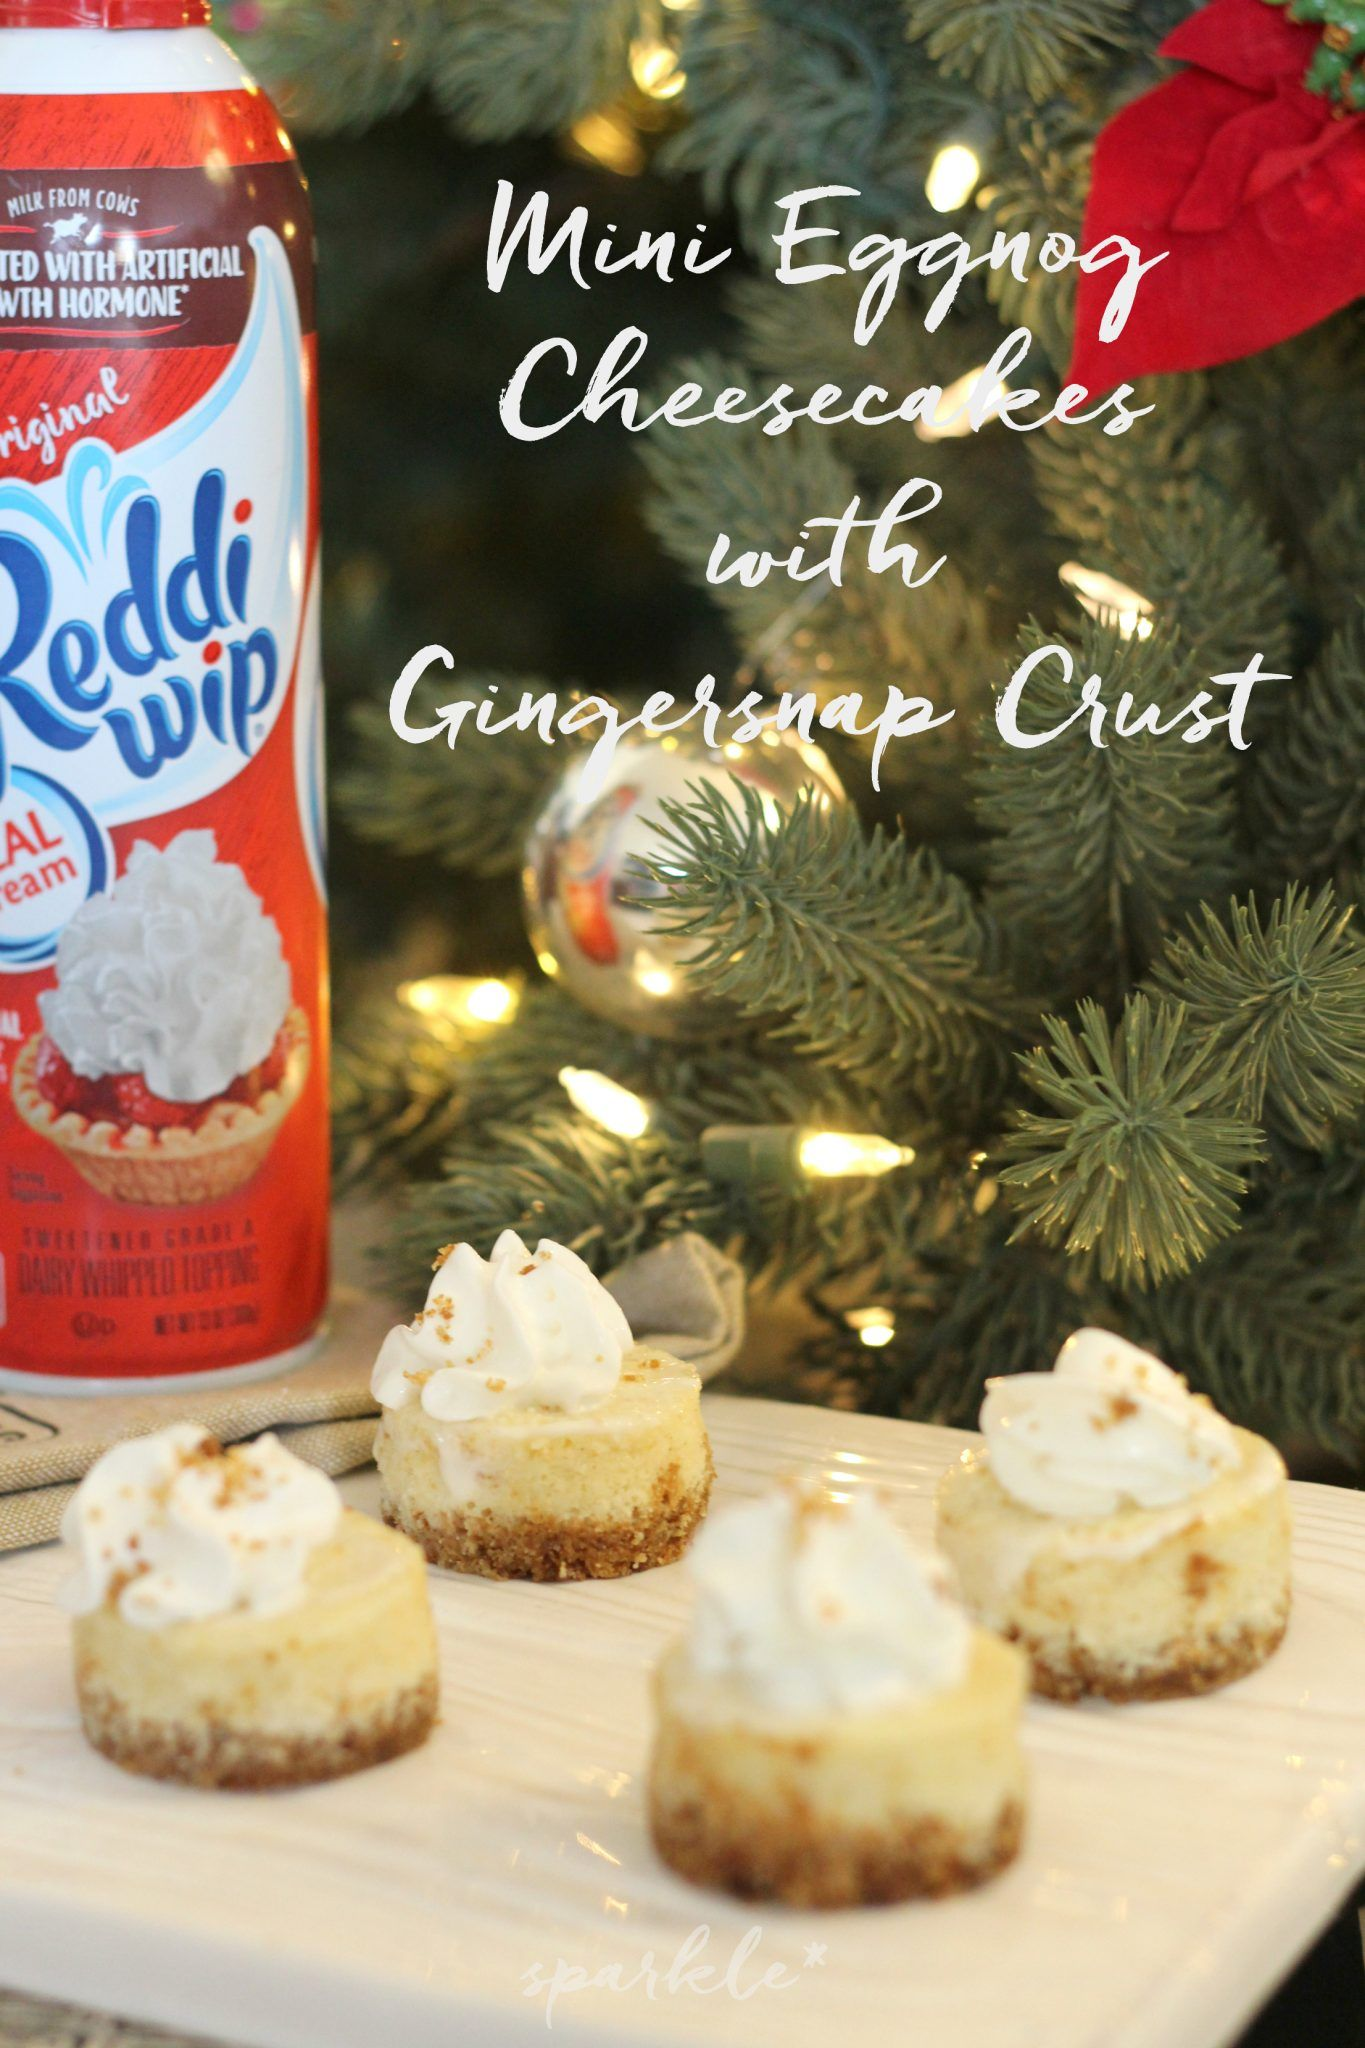 Mini Eggnog Cheesecakes with a Gingerbread Crust * sparkle living blog #eggnogcheesecake